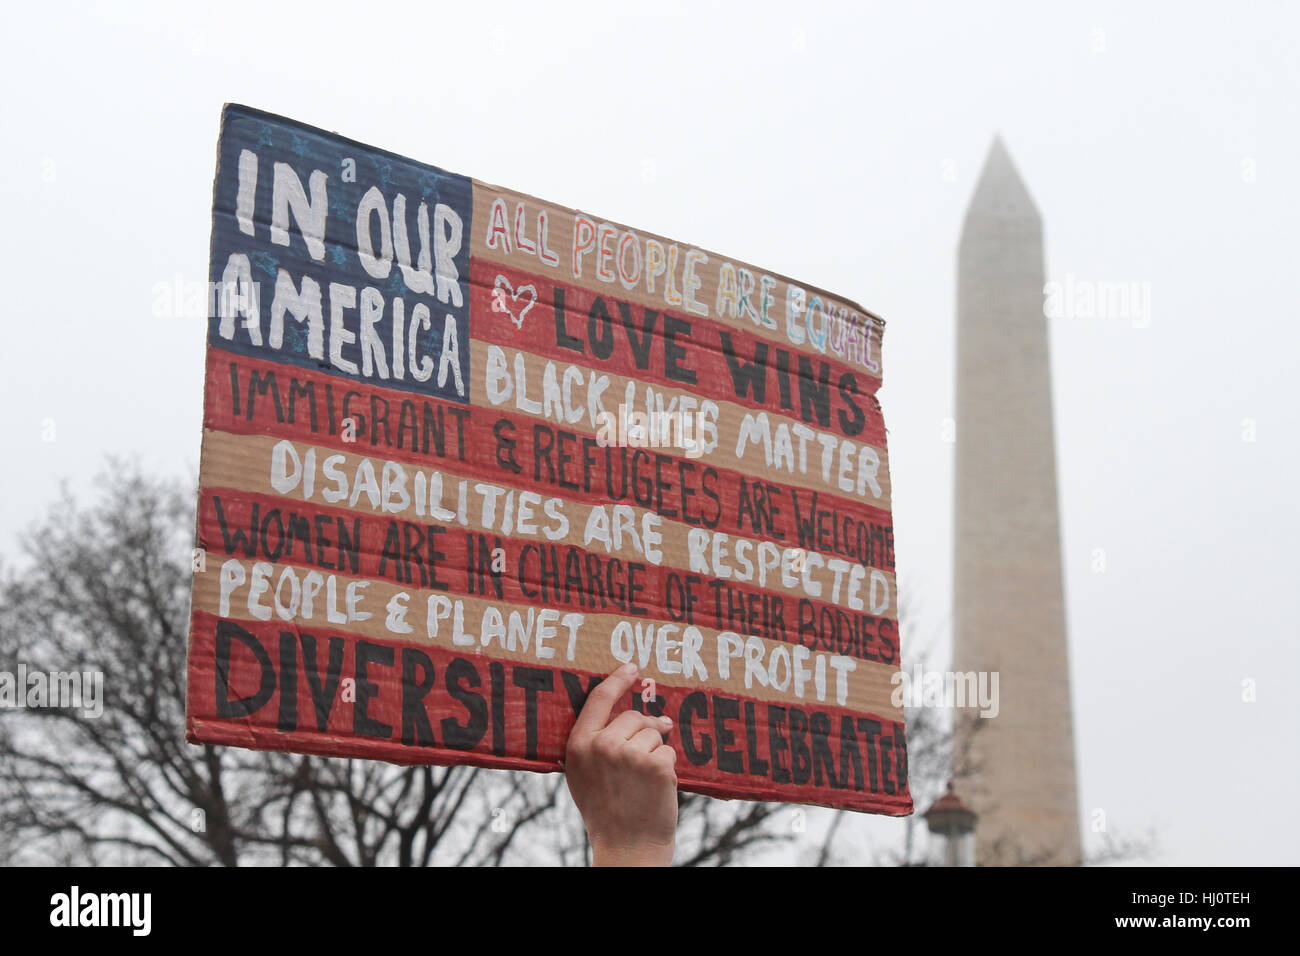 Washington, DC, United States. 21st Jan, 2017. Women's March on Washington. Credit: Susan Pease/Alamy Live News Stock Foto